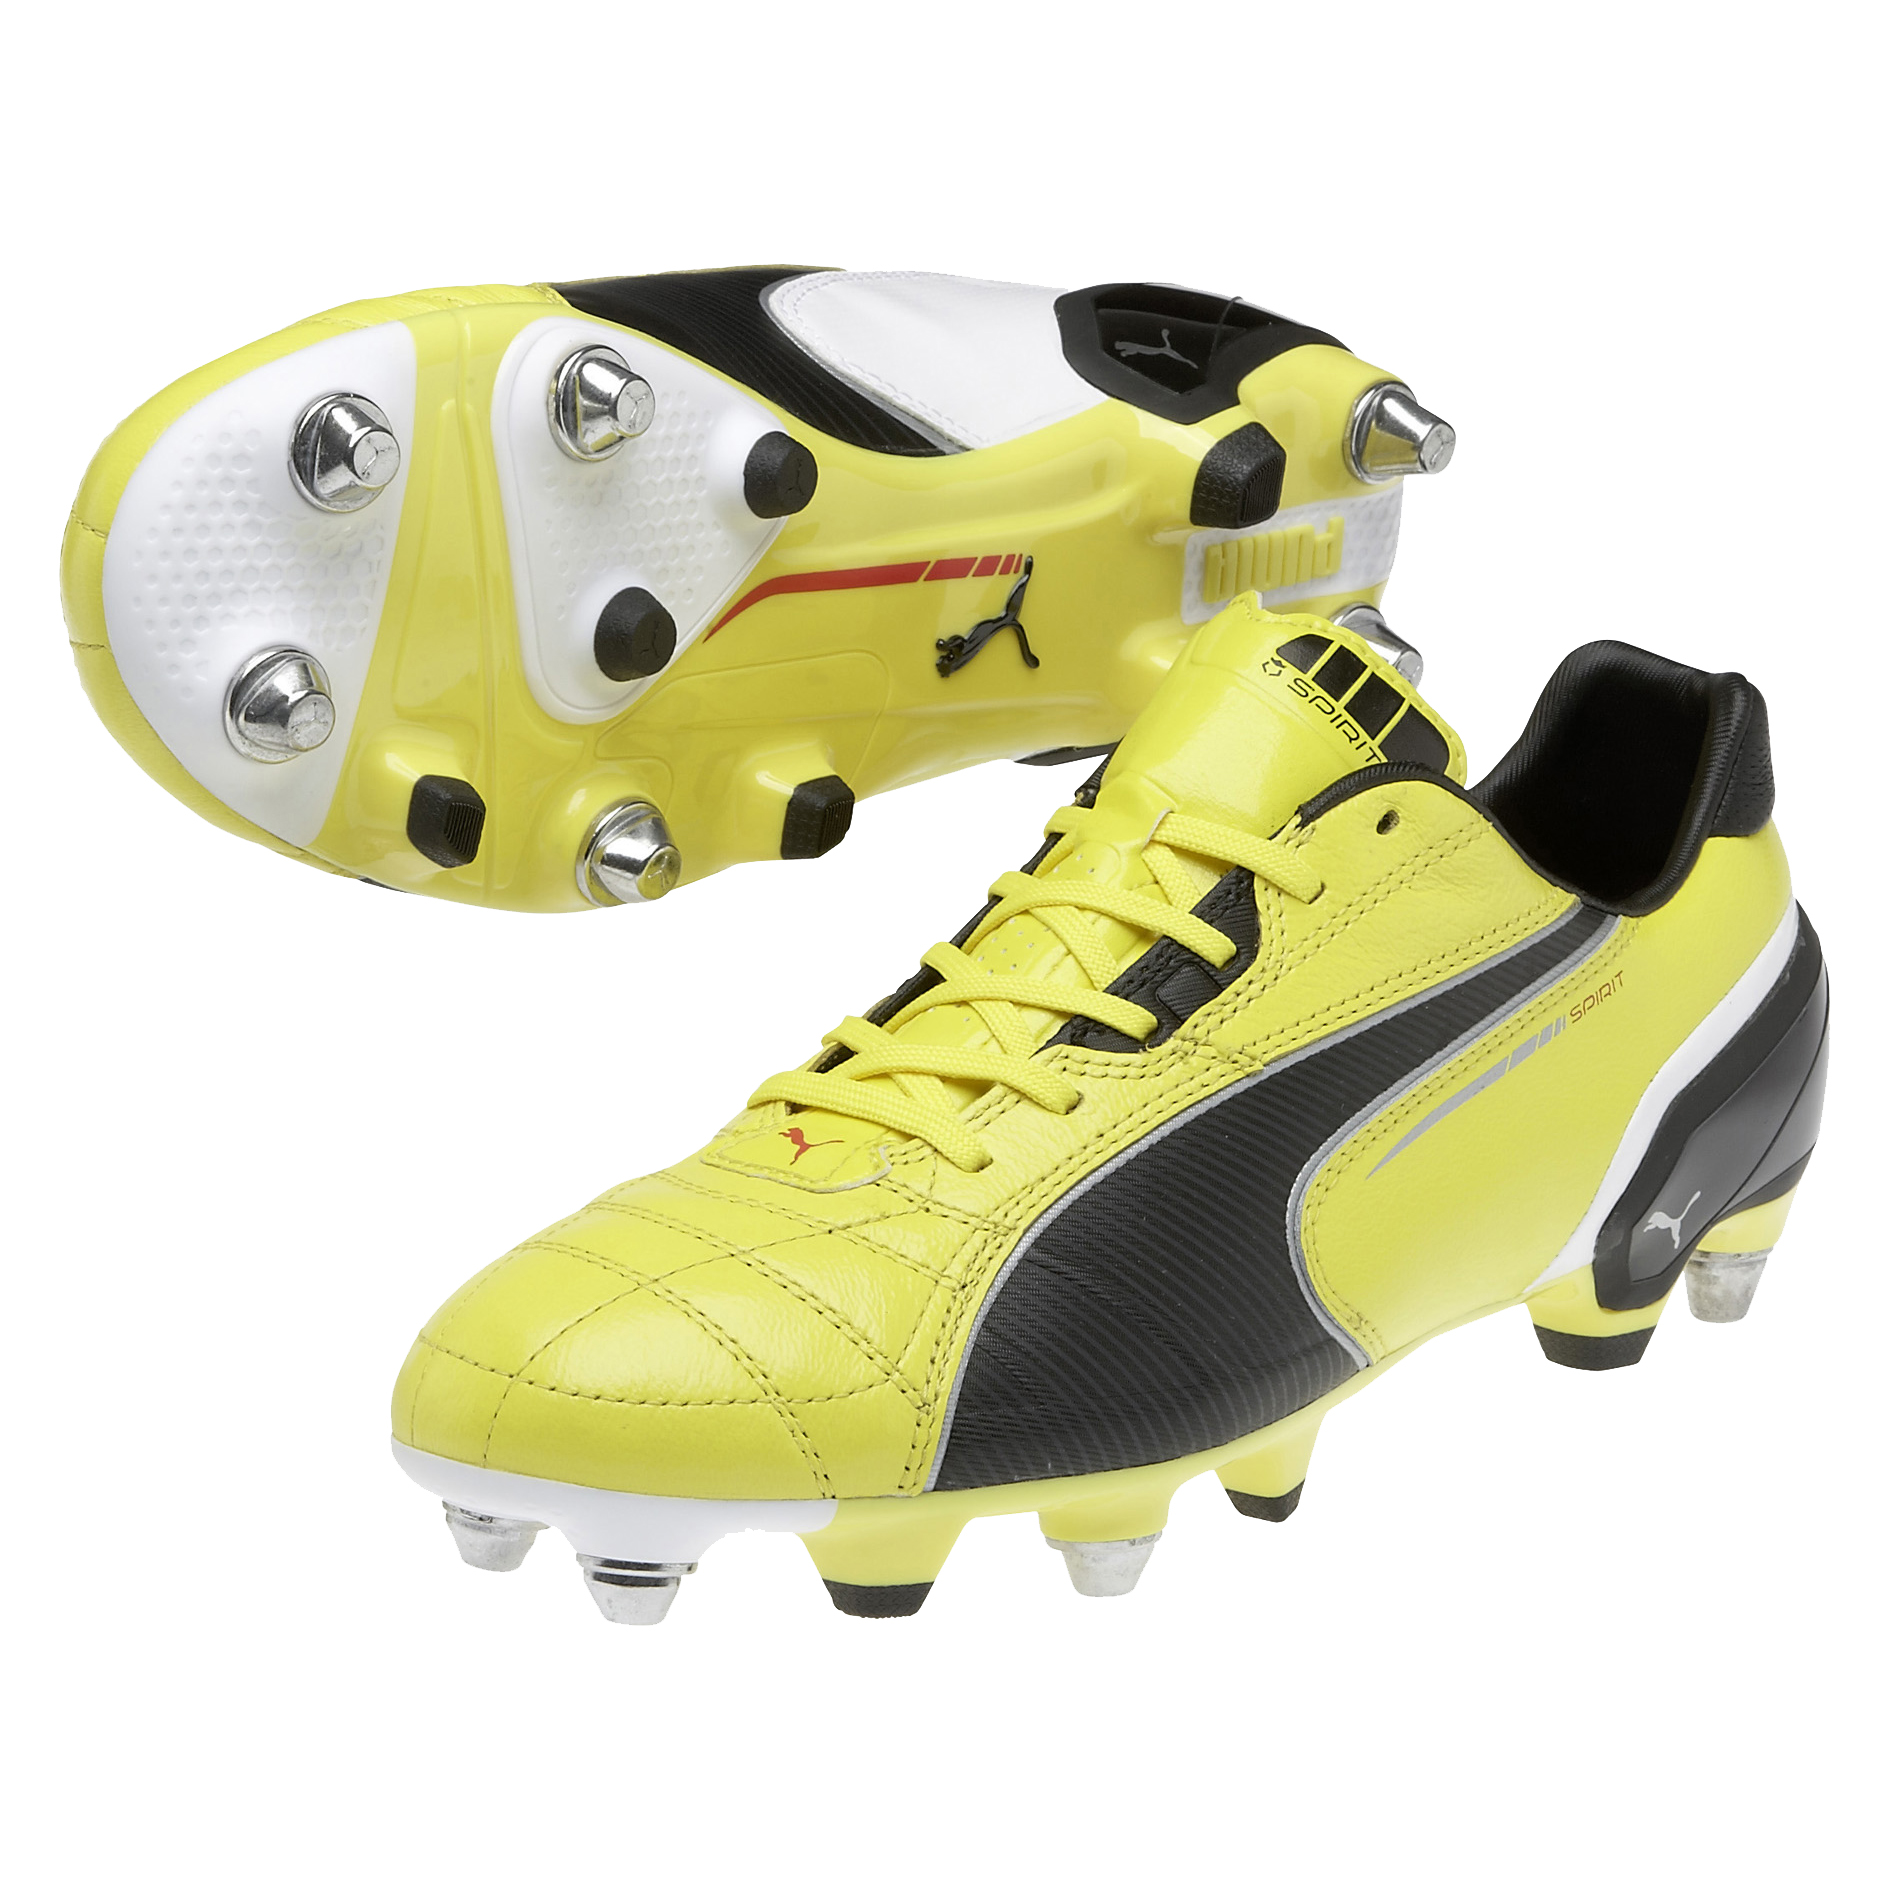 Puma Spirit Mixed Soft Ground Football Boots - Blazing Yellow/Black/White